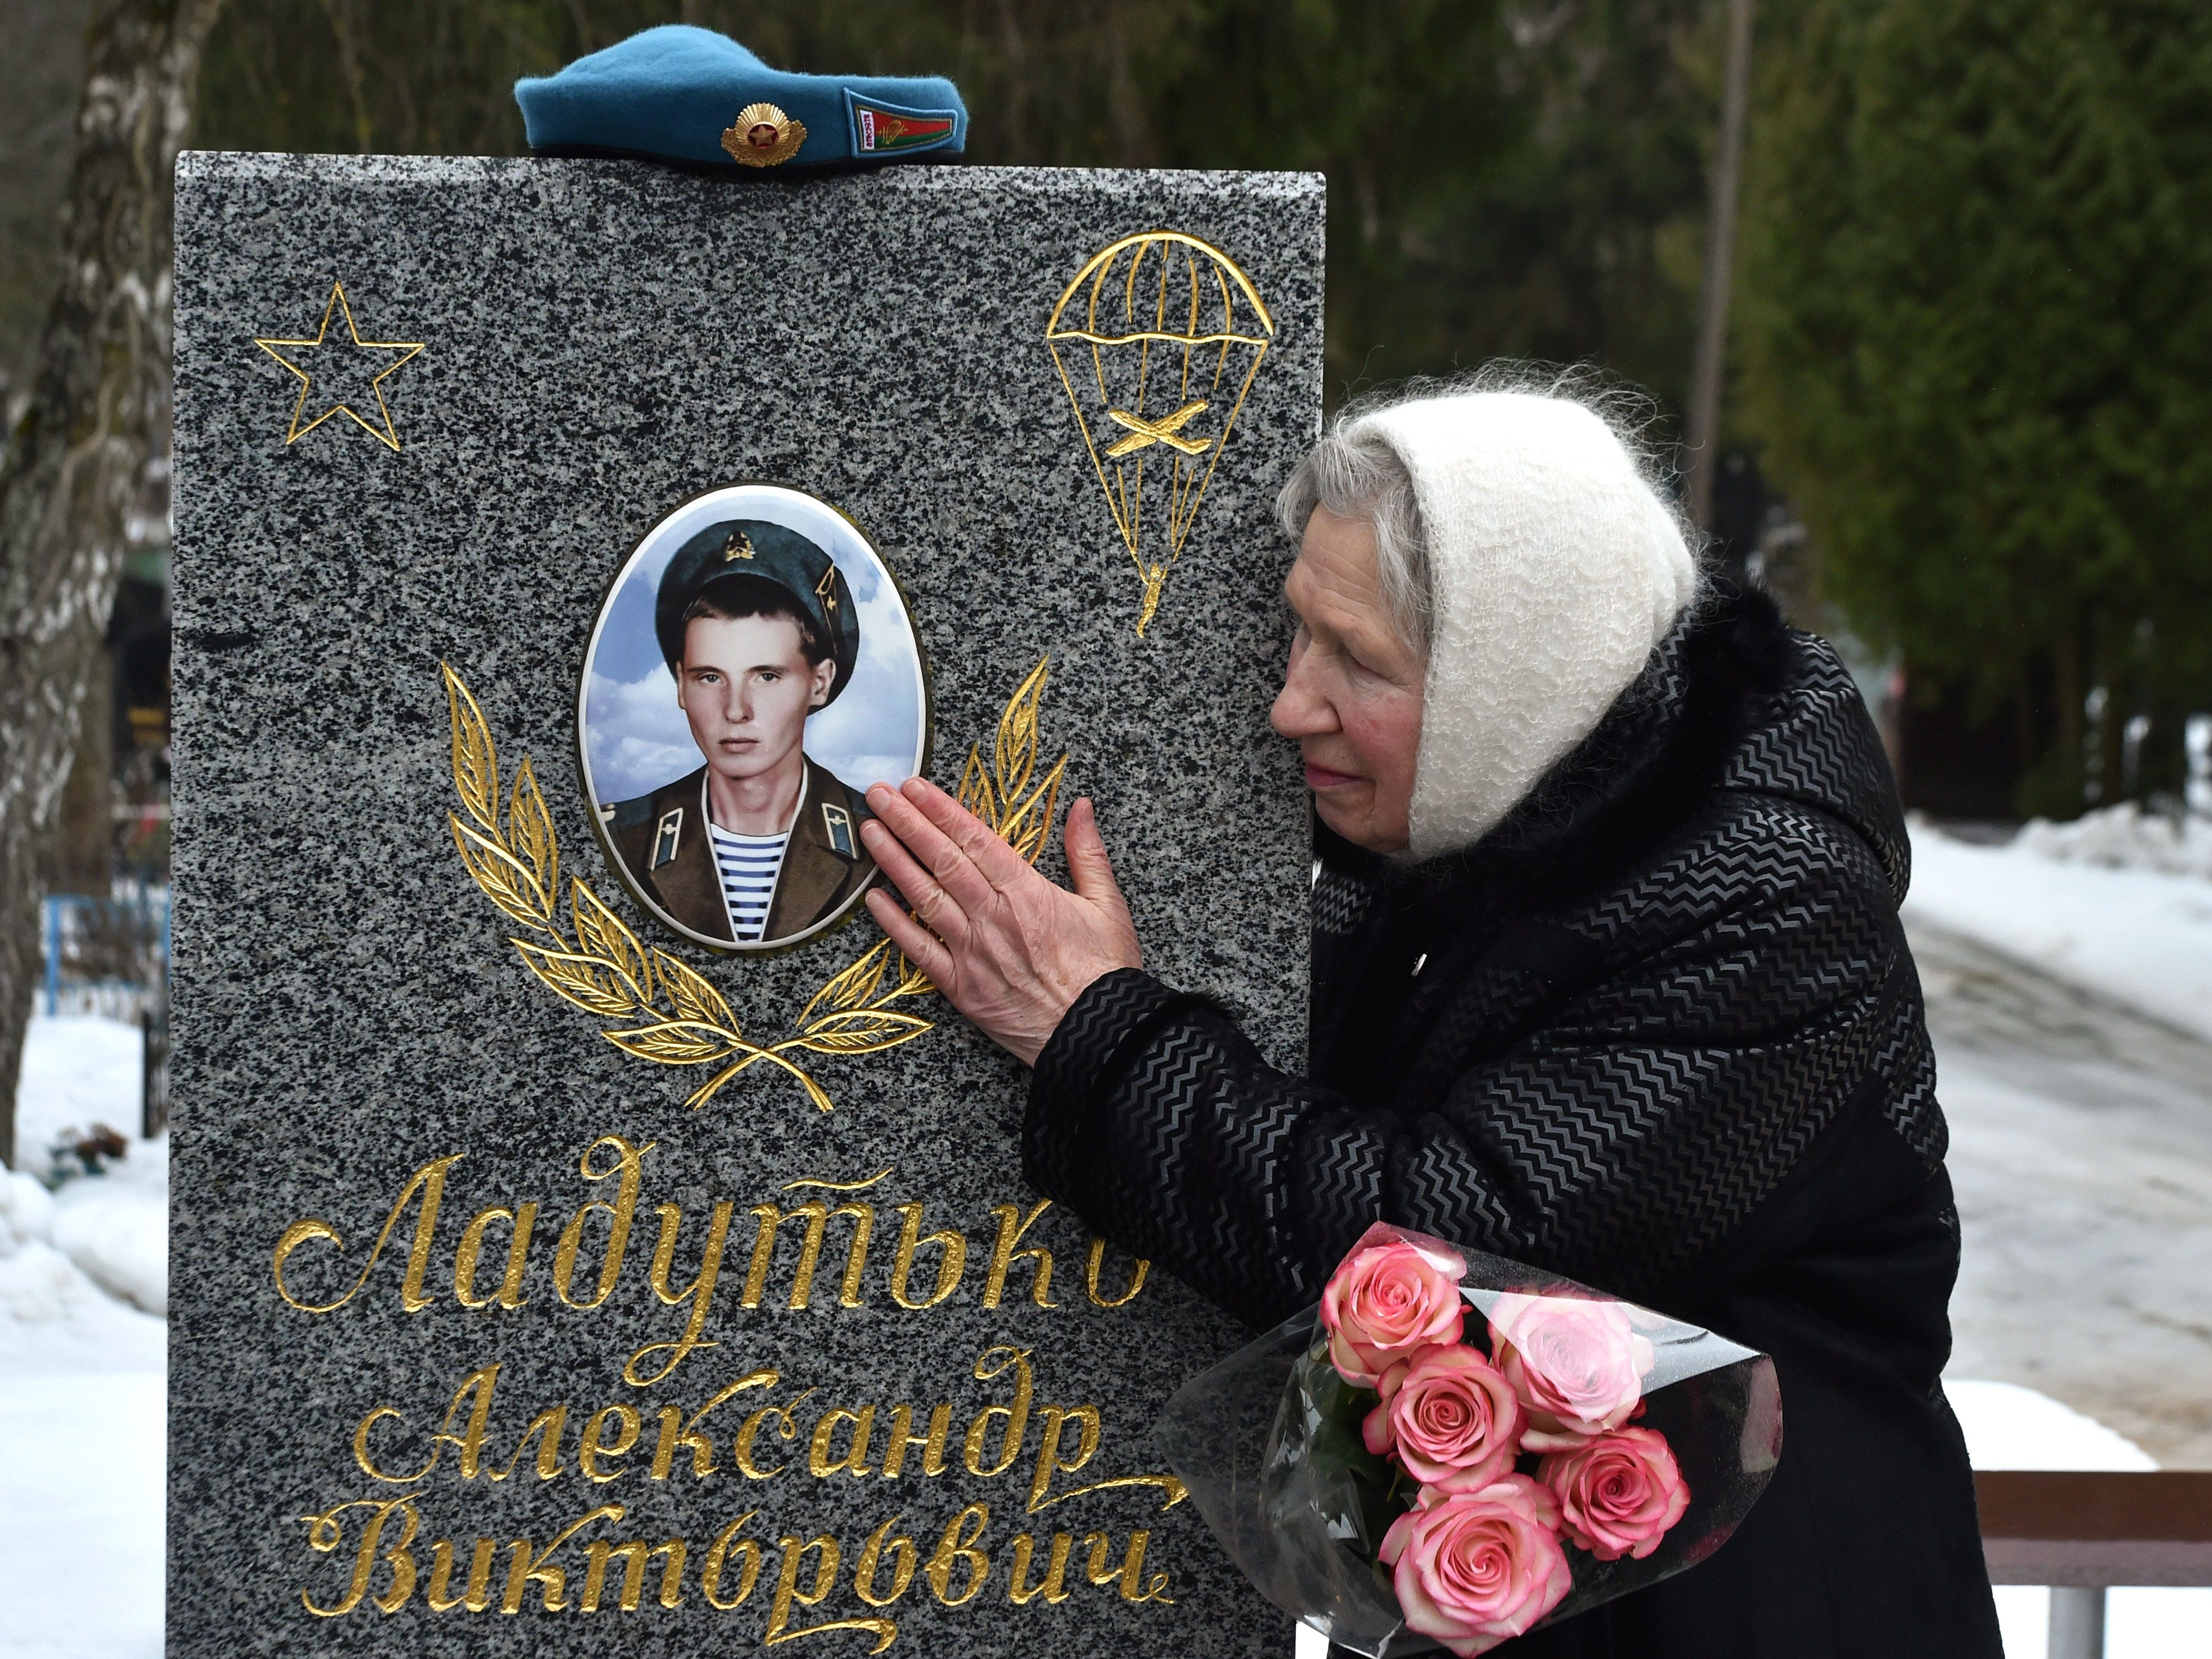 Larisa Ladutko, 78, visits a grave of her son Alexander, killed in 1984 during the Soviet War in Afghanistan on the 30th anniversary of the Soviet troops withdrawal at Chizhovskoe cemetery, outside Minsk on Feb. 15, 2019.